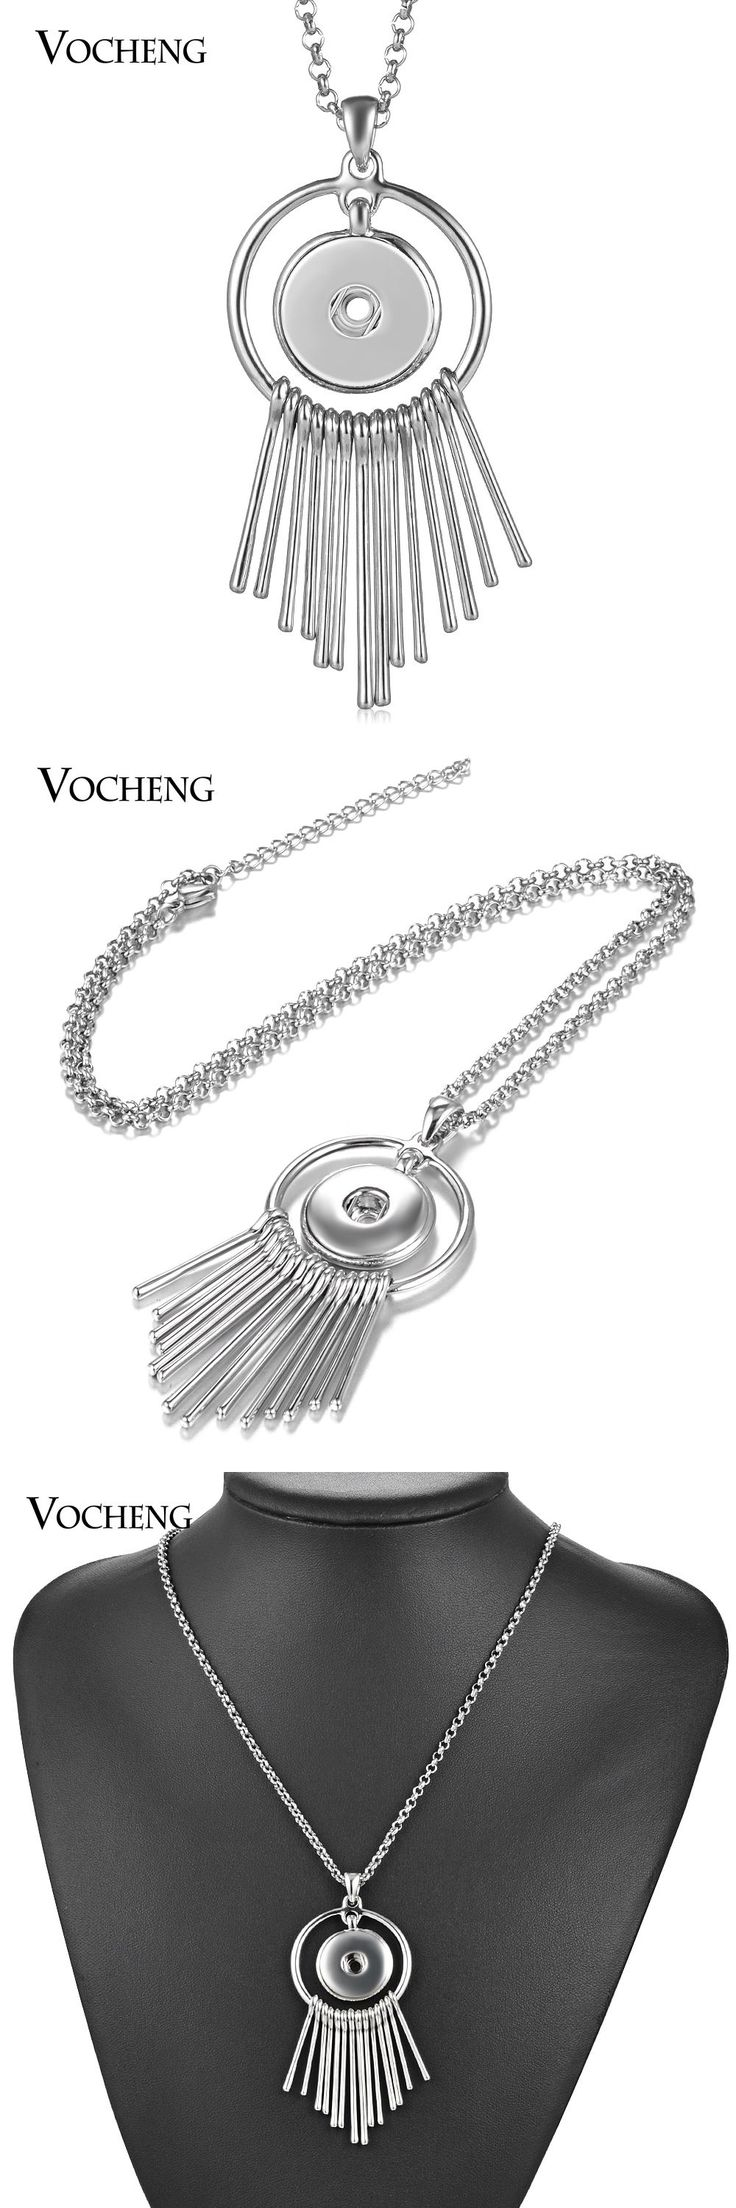 Mixed Lots 64511: 10Pcs Lot Vocheng Tassels 18Mm Snap Jewelry Stainless Steel Chain Nn-611*10 -> BUY IT NOW ONLY: $32.52 on eBay!